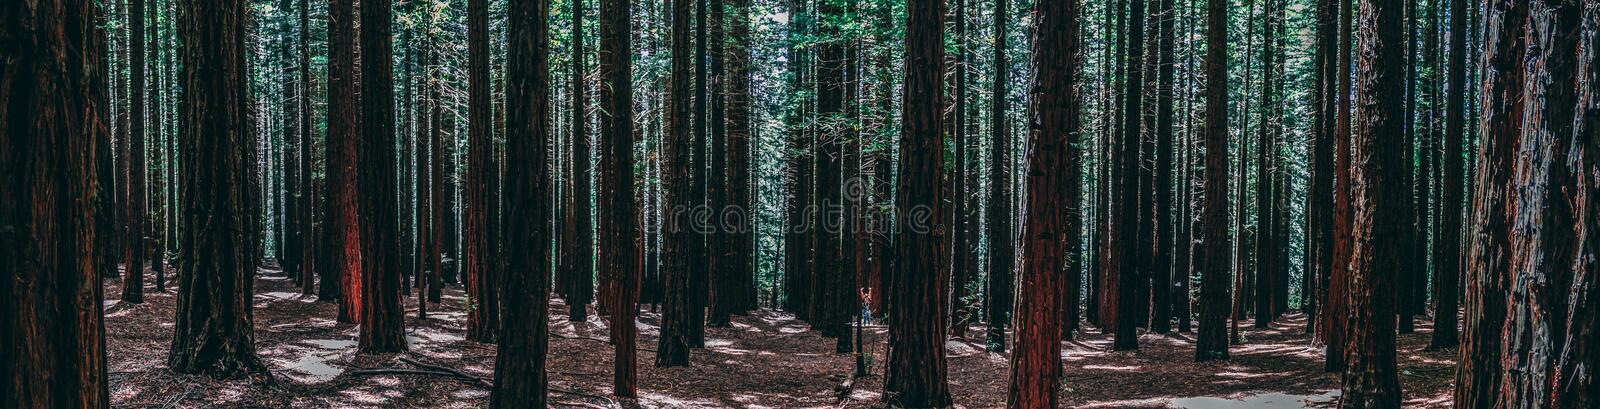 Rows of trees at the Redwood Forest Warburton in the Yarra Valley. Melbourne, Australia. Rows of trees at the Redwood Forest is a tourist Icon for nature lovers royalty free stock images